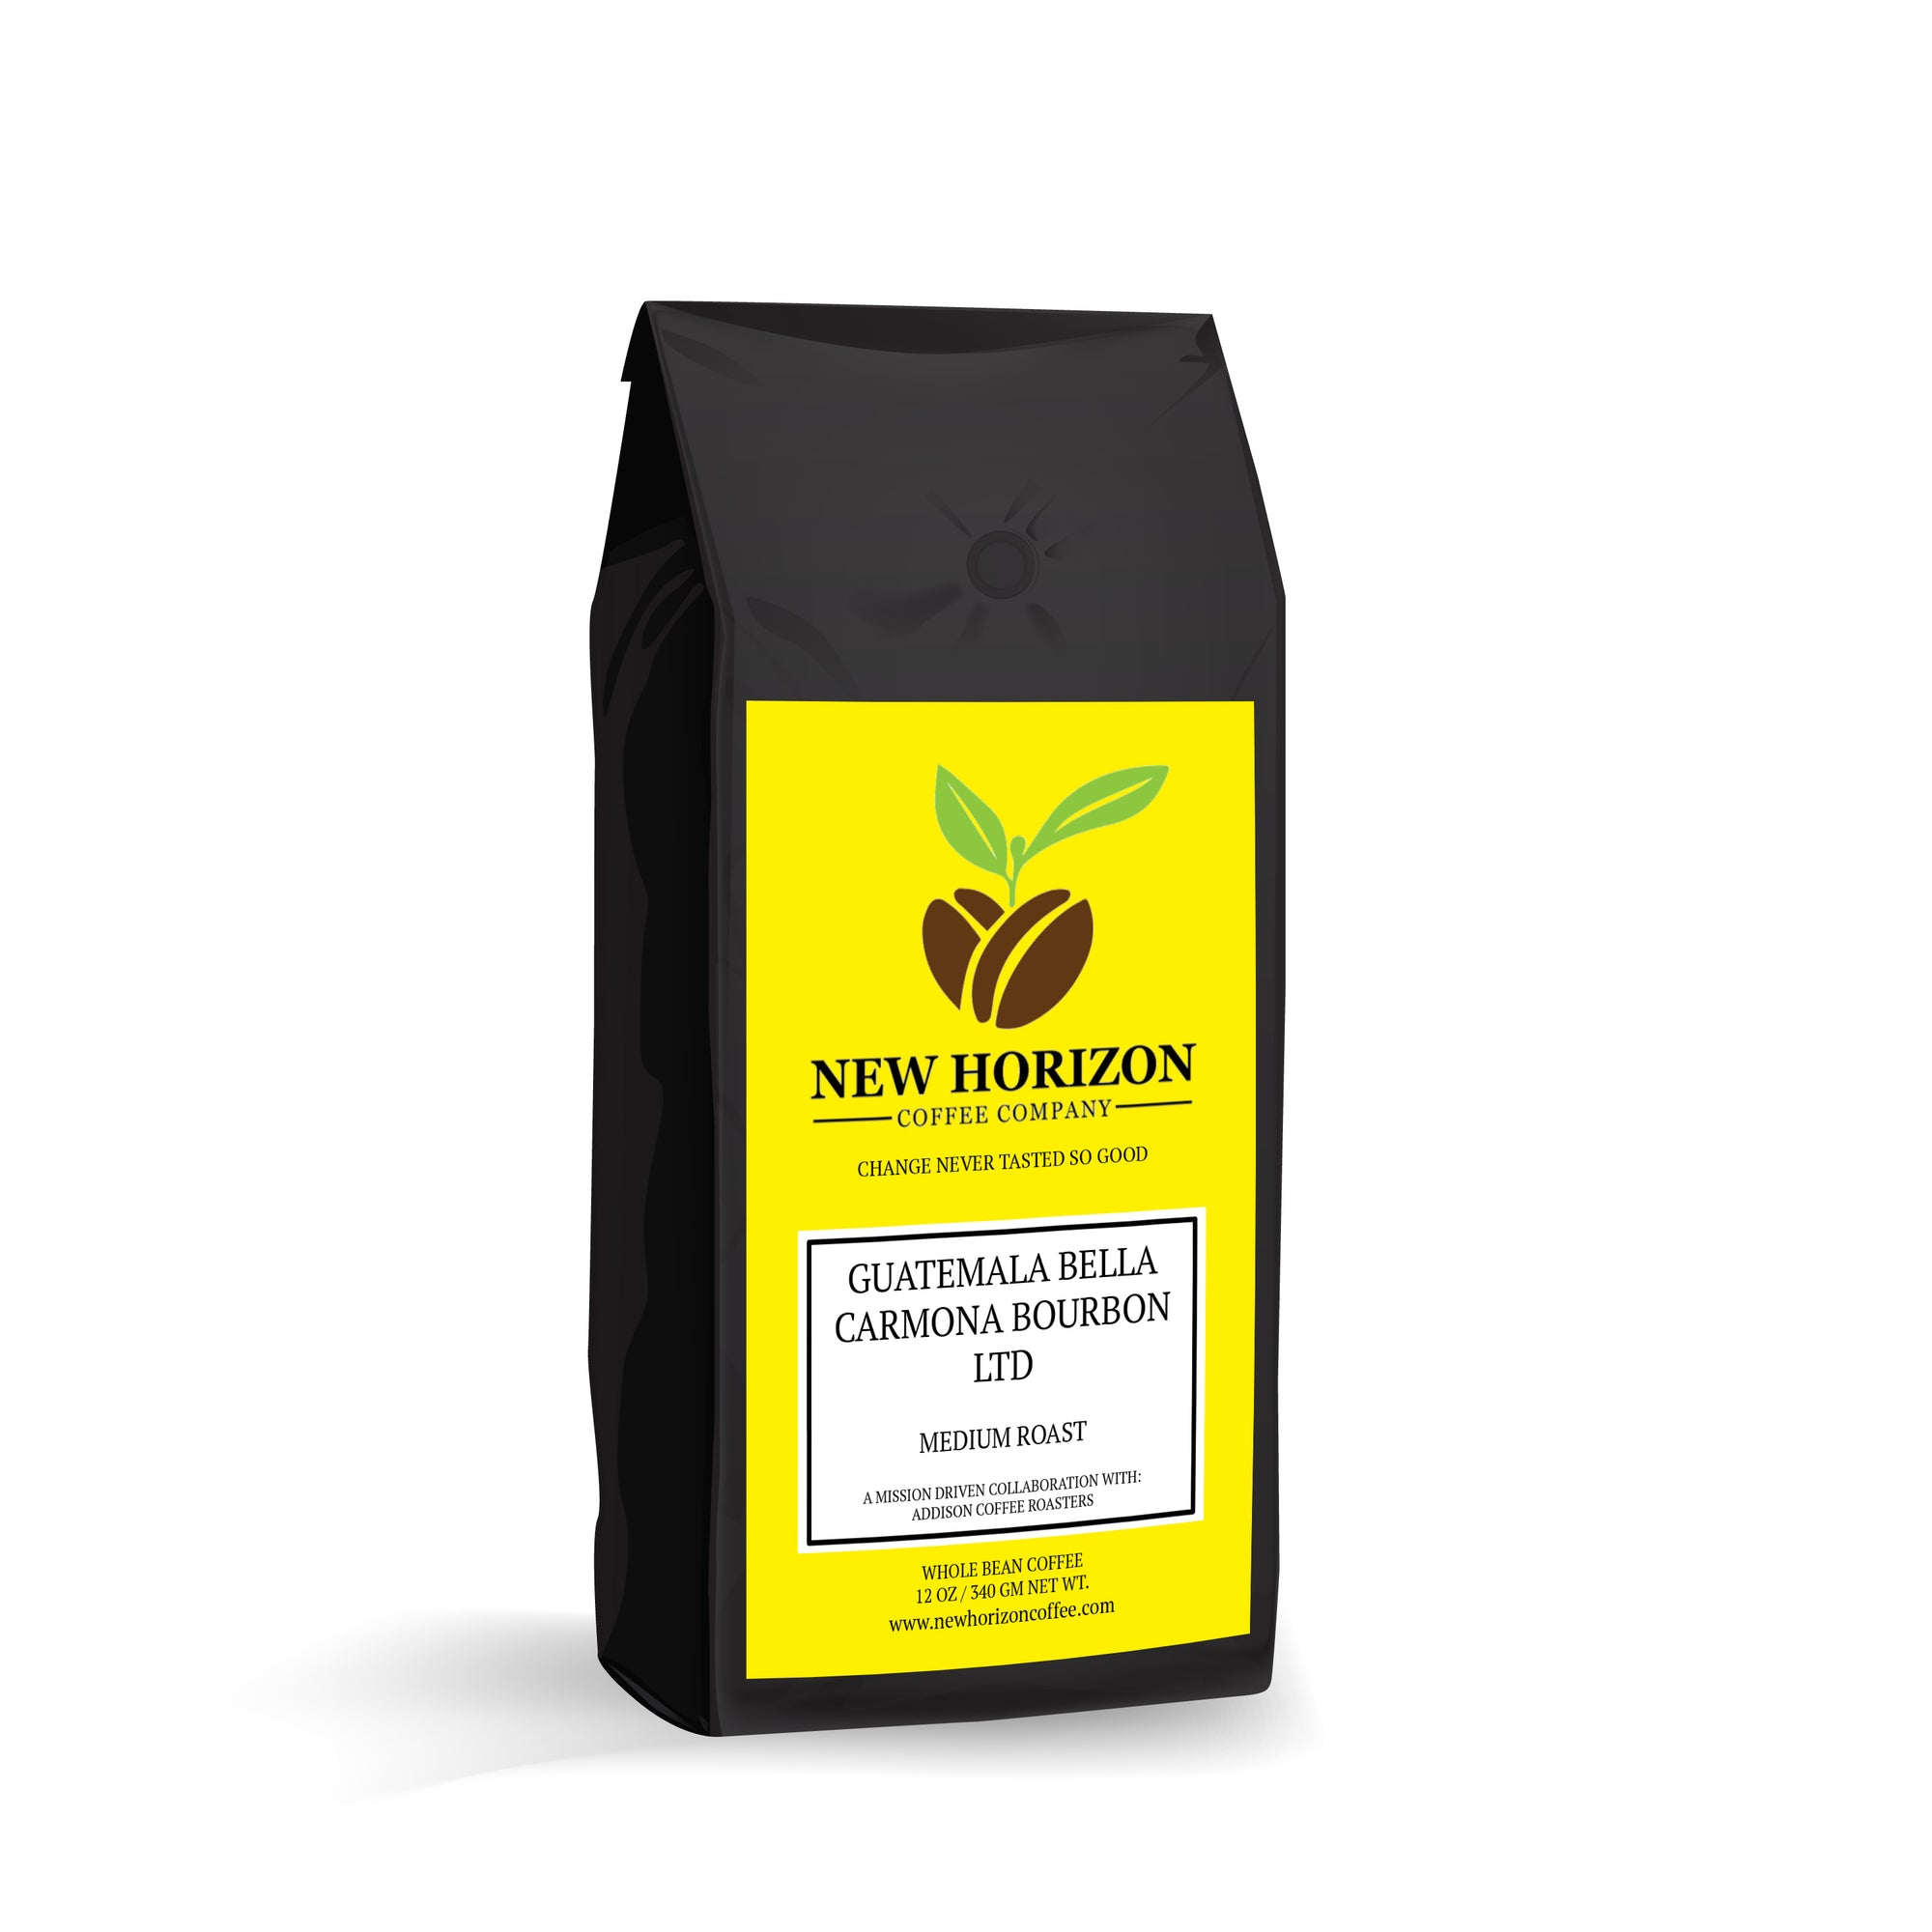 Guatemala Bella Carmona Bourbon LTD Medium Roast